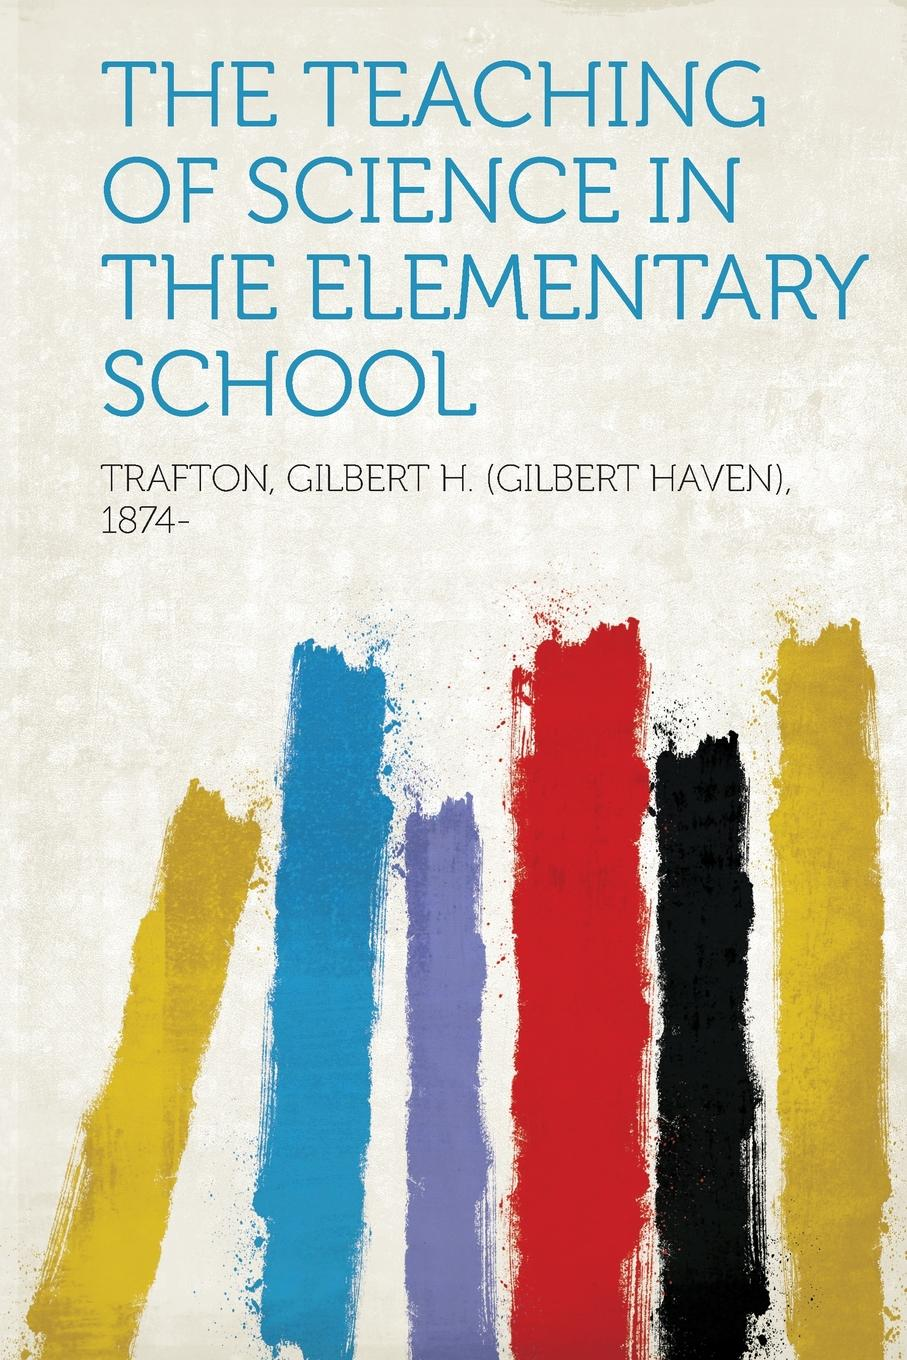 The Teaching of Science in the Elementary School